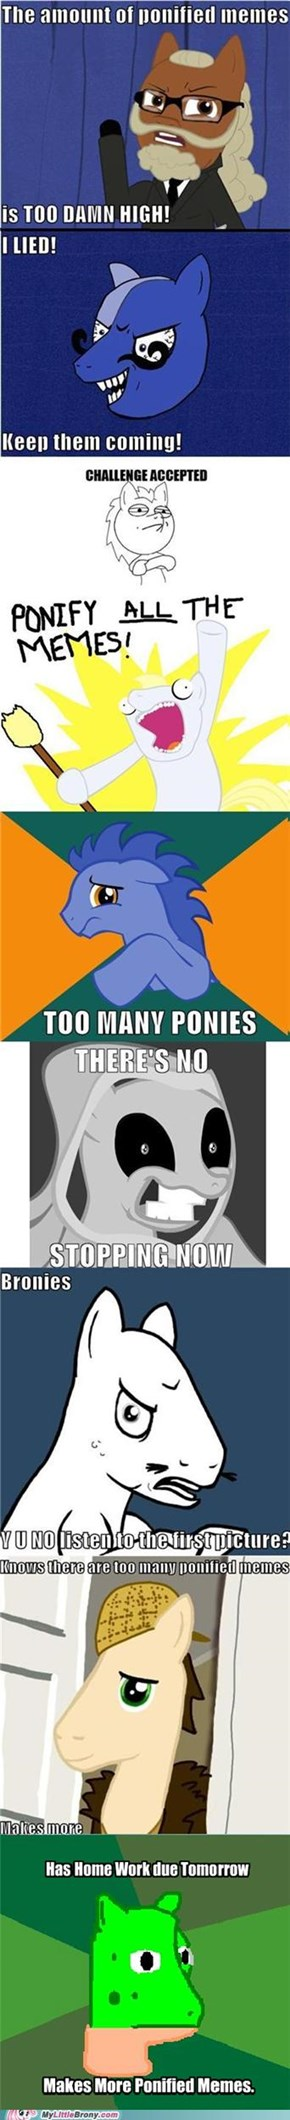 Yo Pony, I Heard You Like Memes...